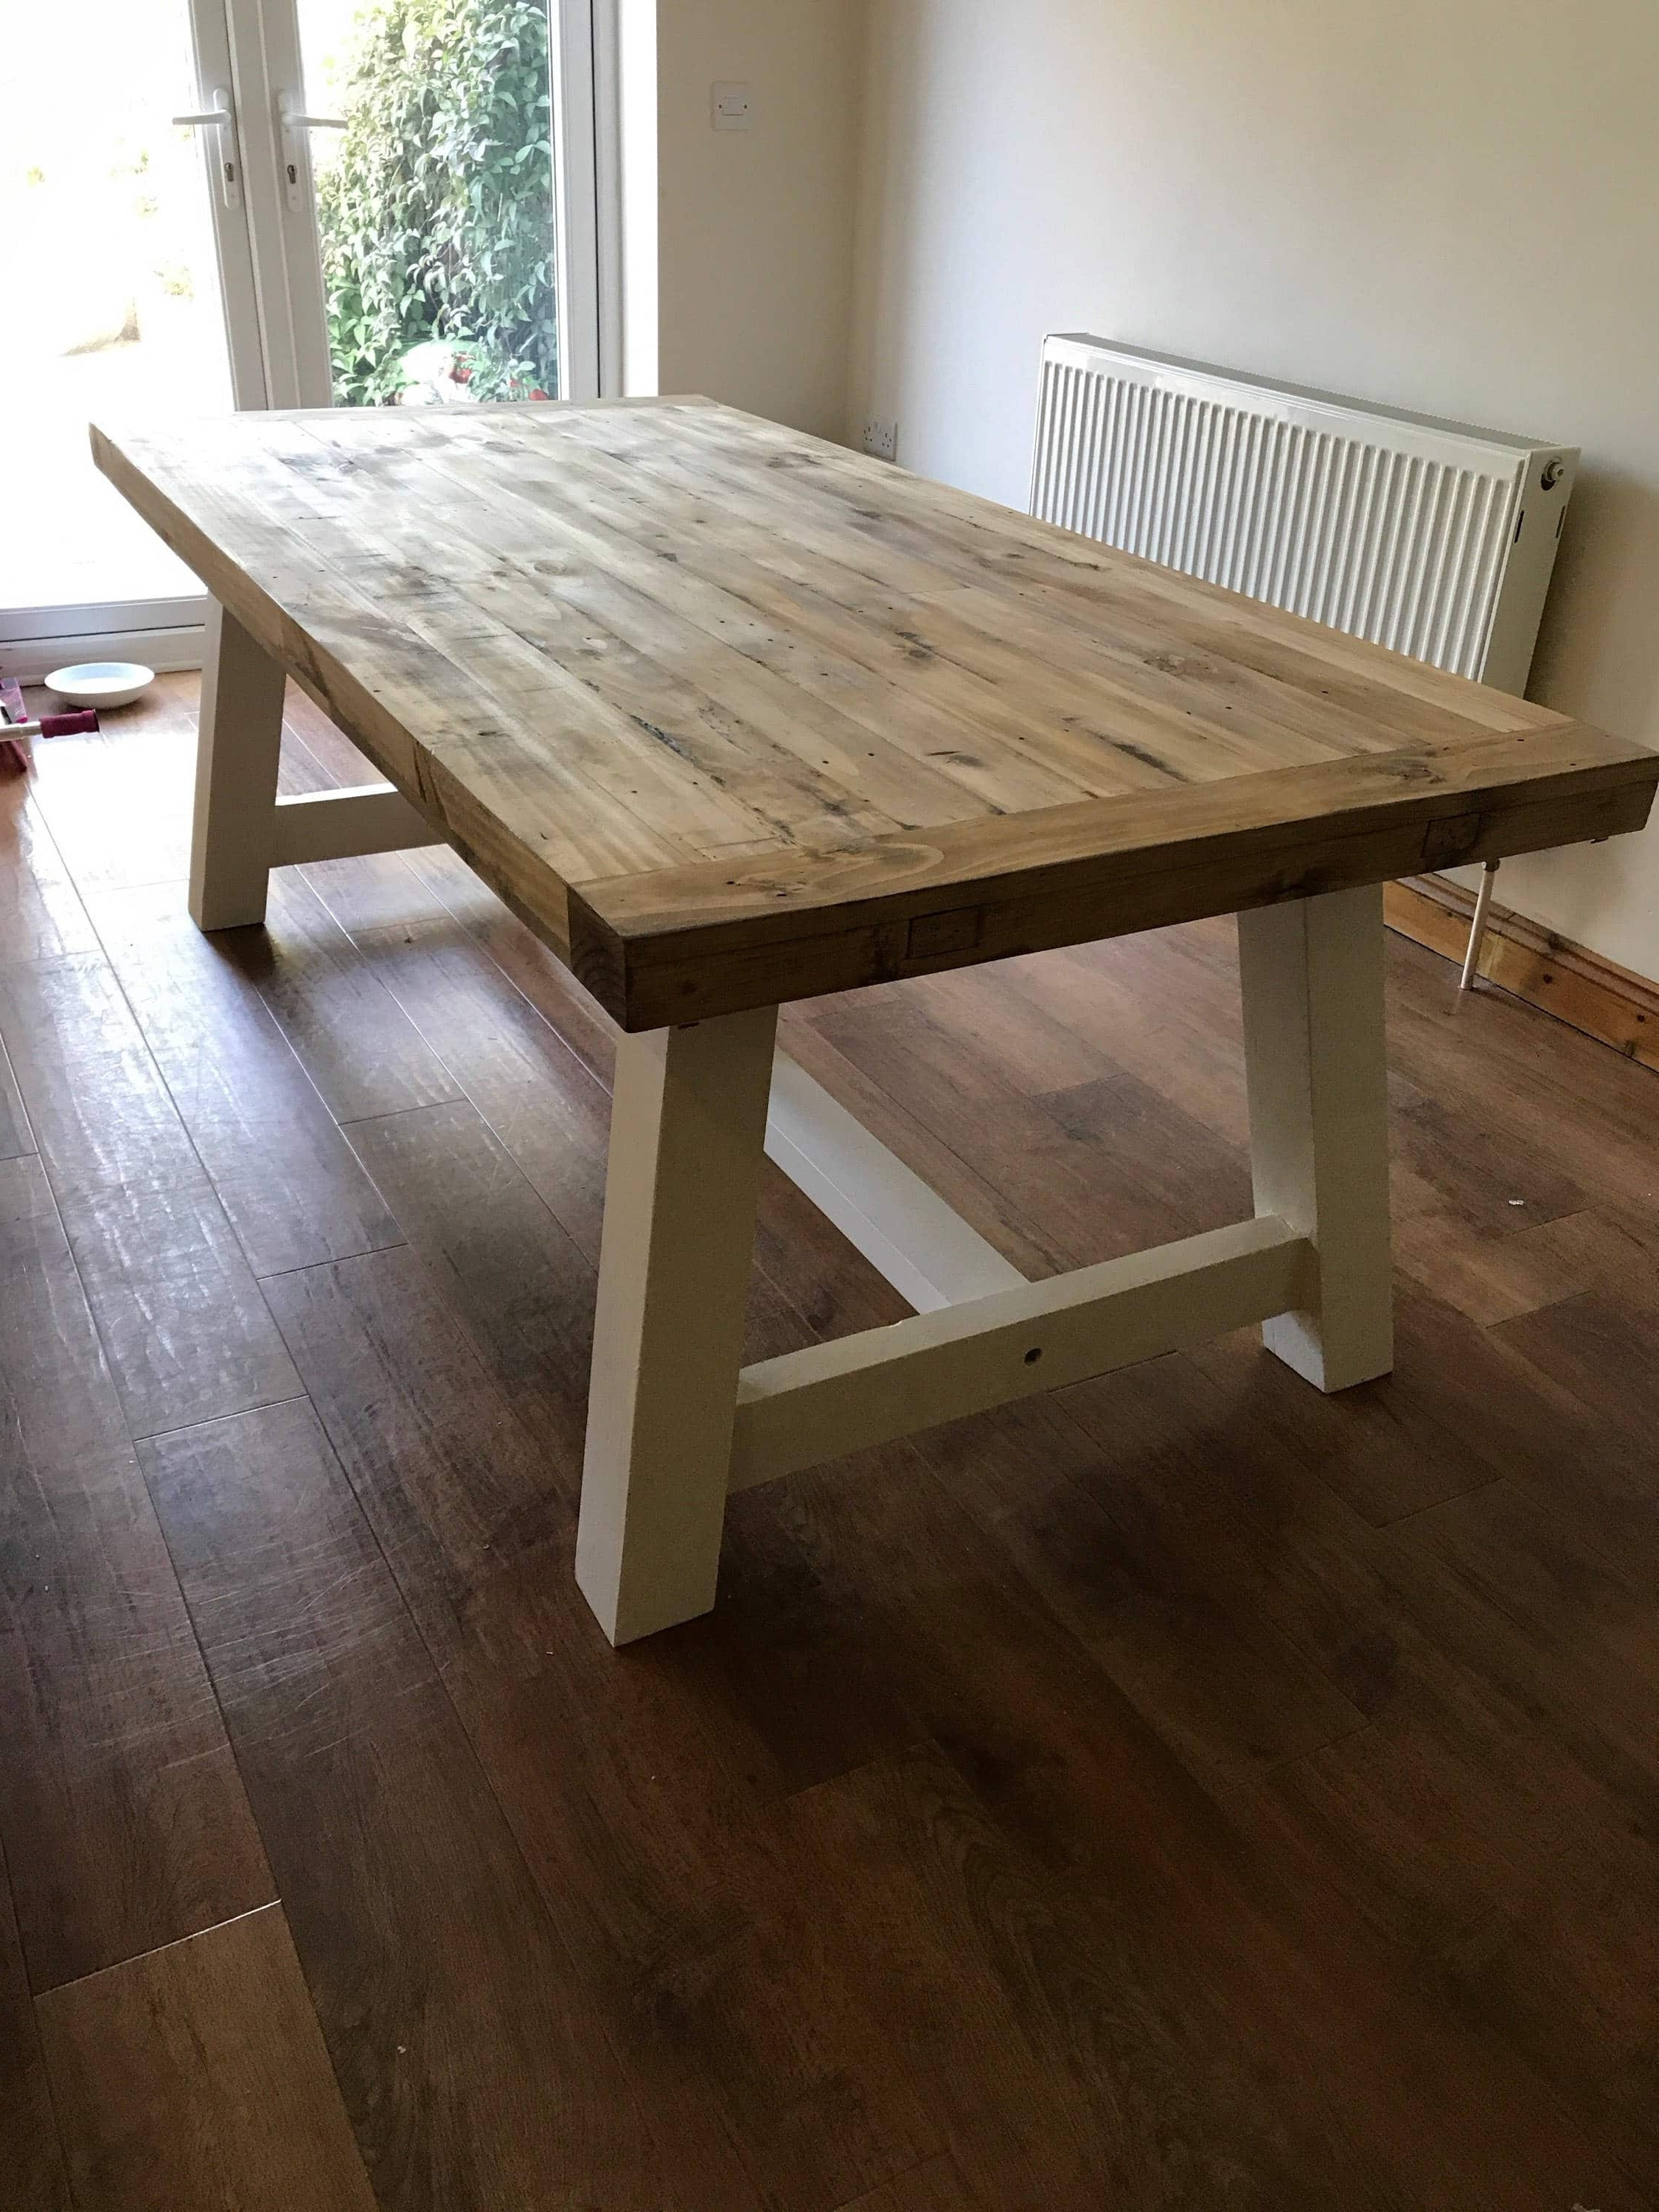 Widely Used Purbeck Shabby Chic Dining Table – Newco Interiors – Bespoke Joinery Throughout Shabby Chic Dining Sets (View 24 of 25)